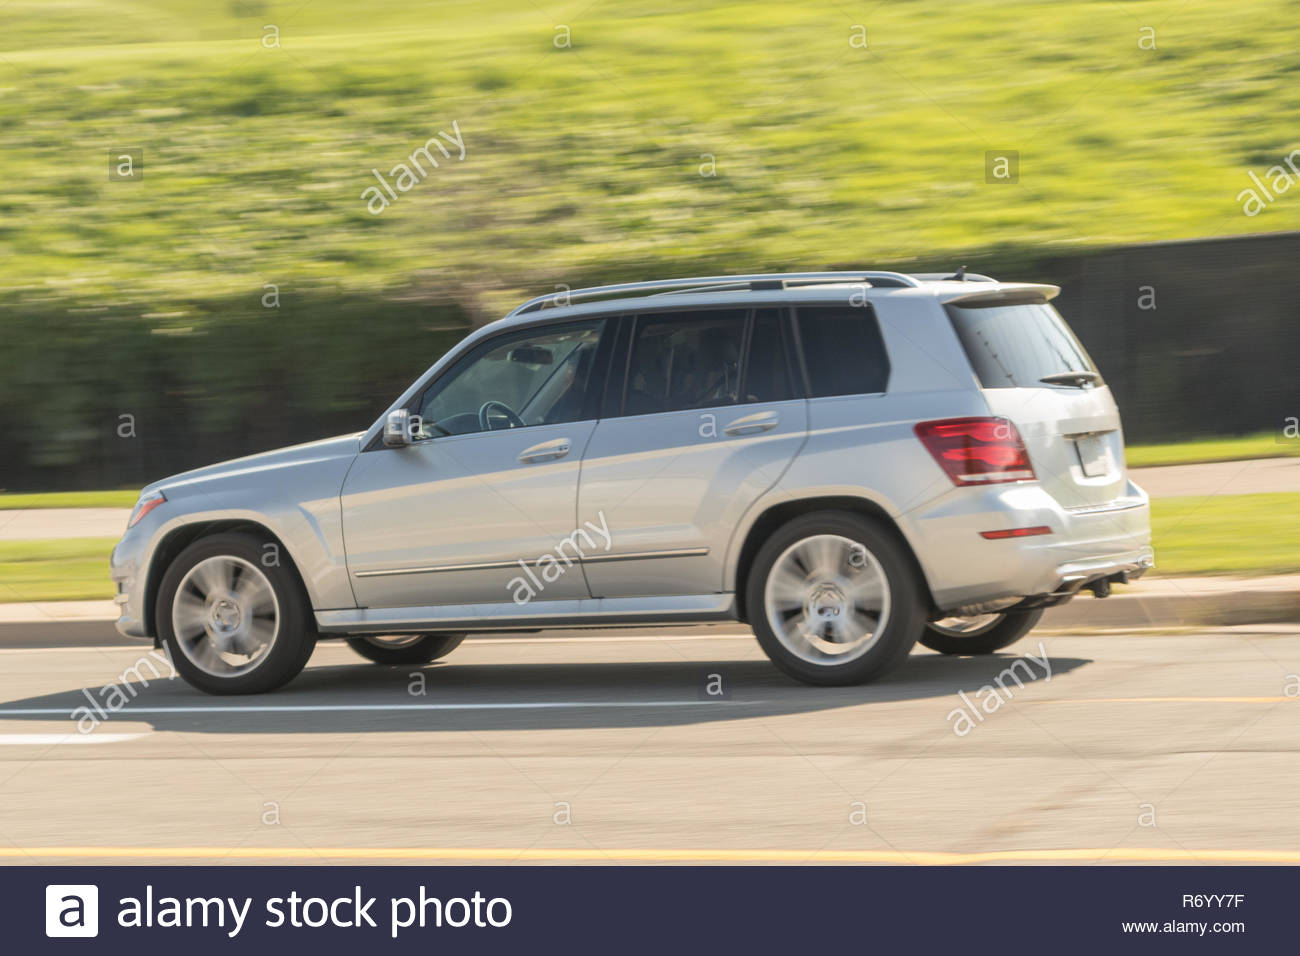 Silver SUV zipping through the streets - Stock Image